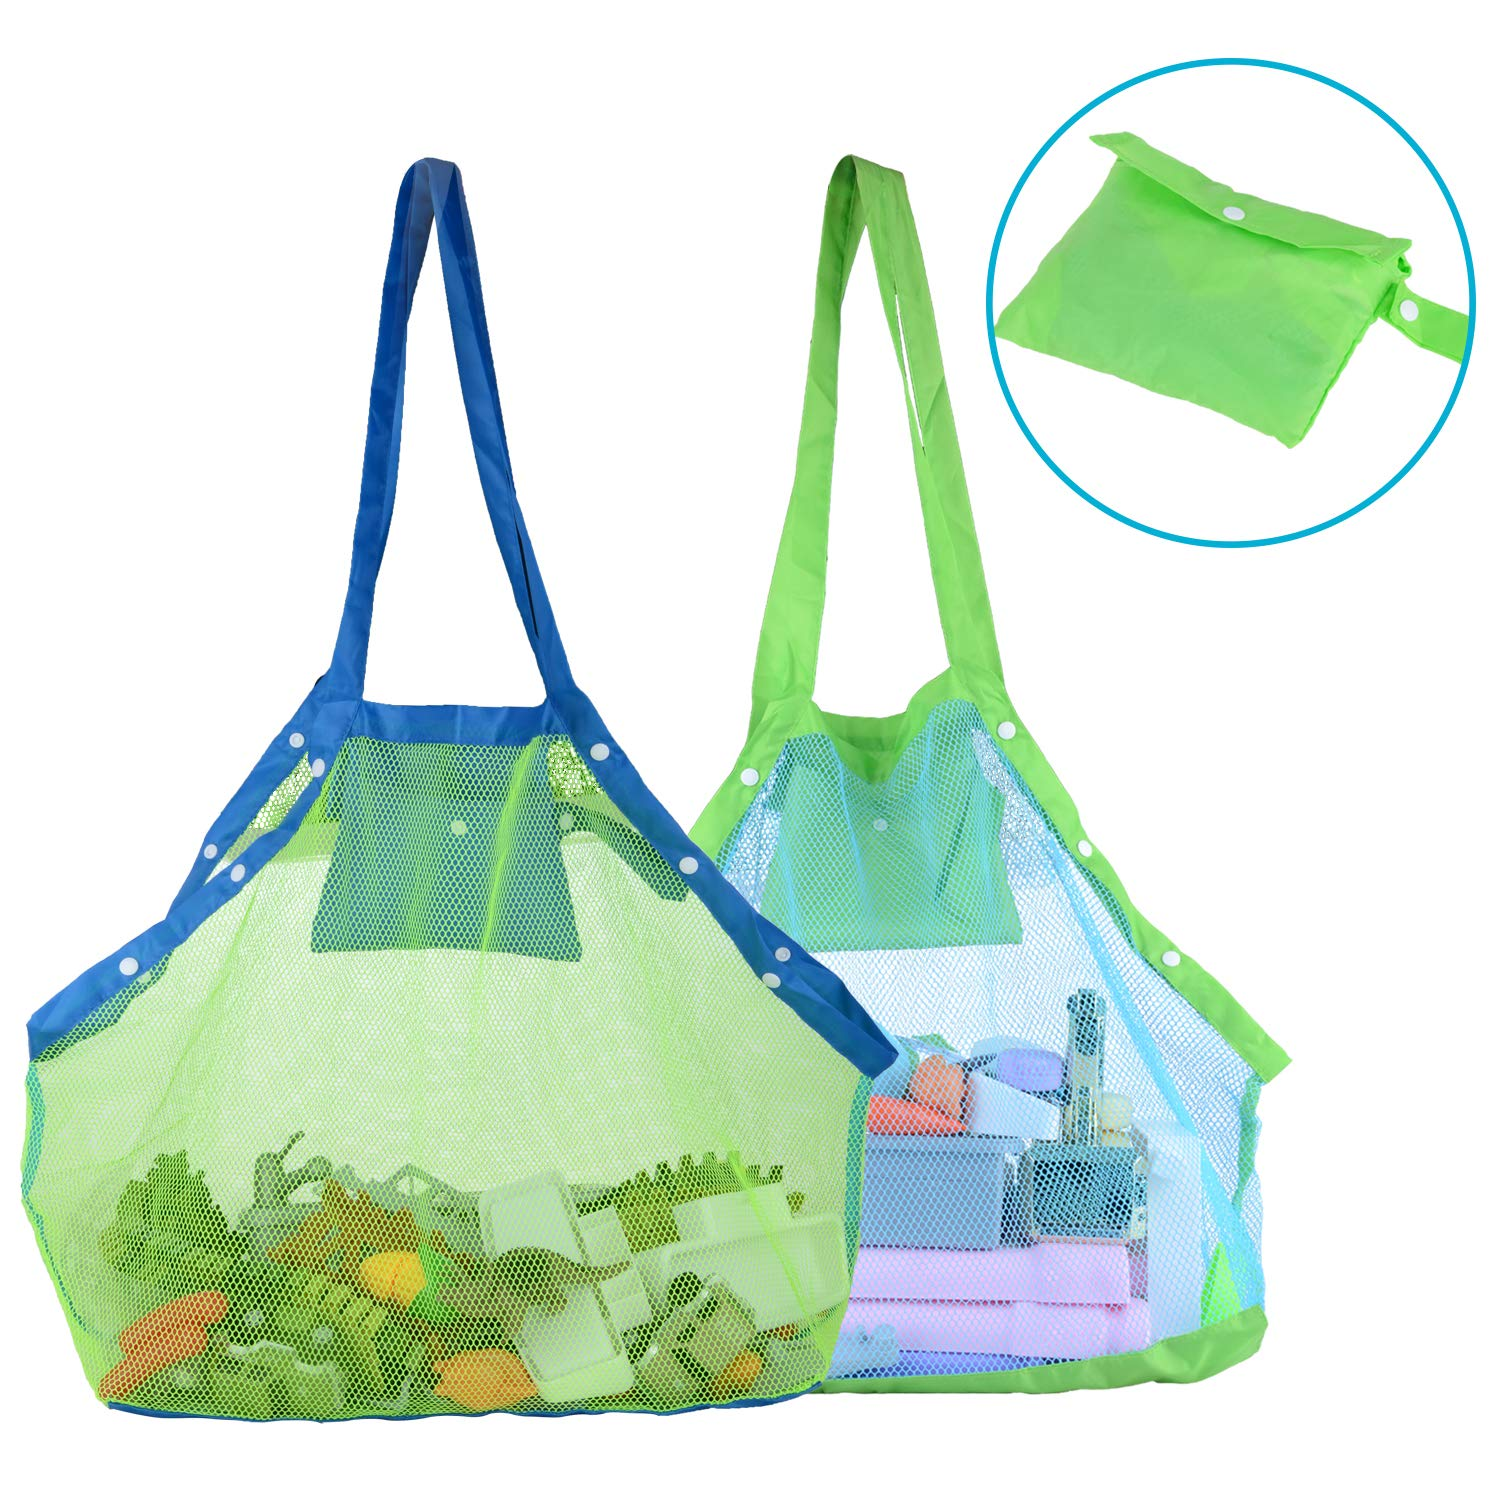 d6f85f3b1025 TopTops Mesh Beach Tote Bag, Kids Sea Shell Bags,2 Pack Large Beach Toy Bag  Away from Sand,Bag Toys Organizer,Sand Toys Collector-Beach Pool ...